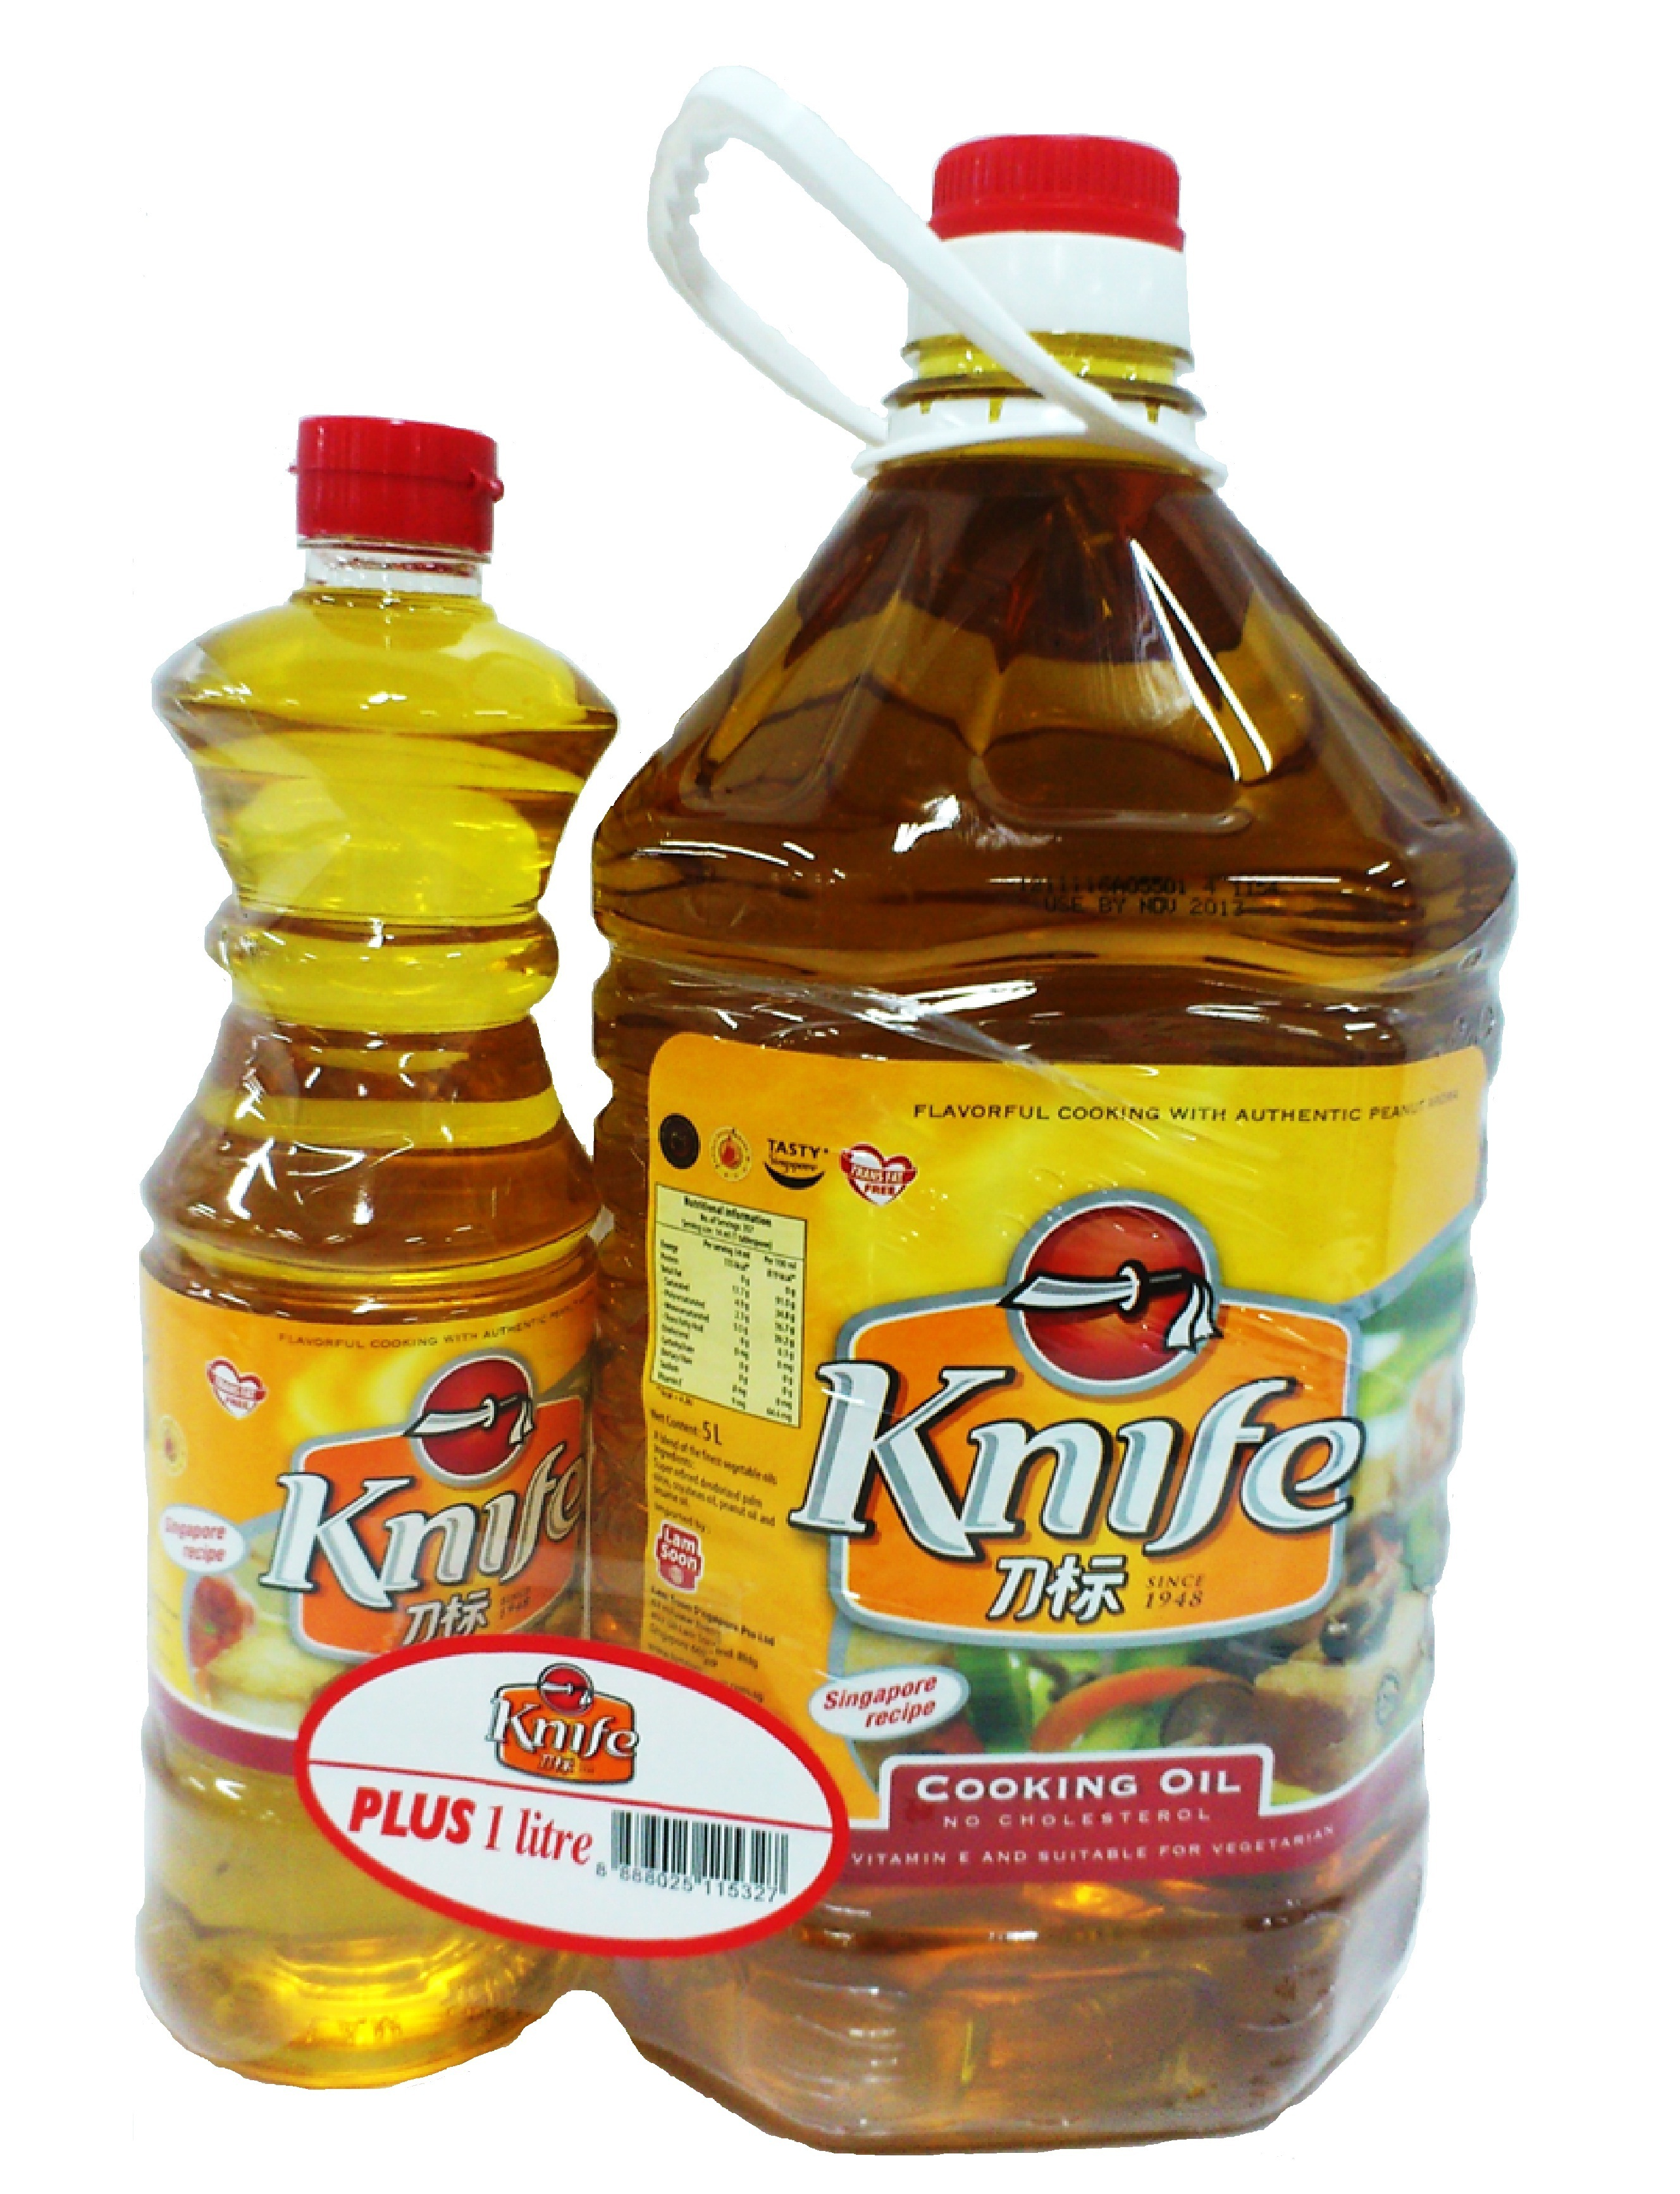 Http List Item Naturel Premium Oil Blended With Minute Maid Homestyle Guava 1l 429859919g 0 W St G